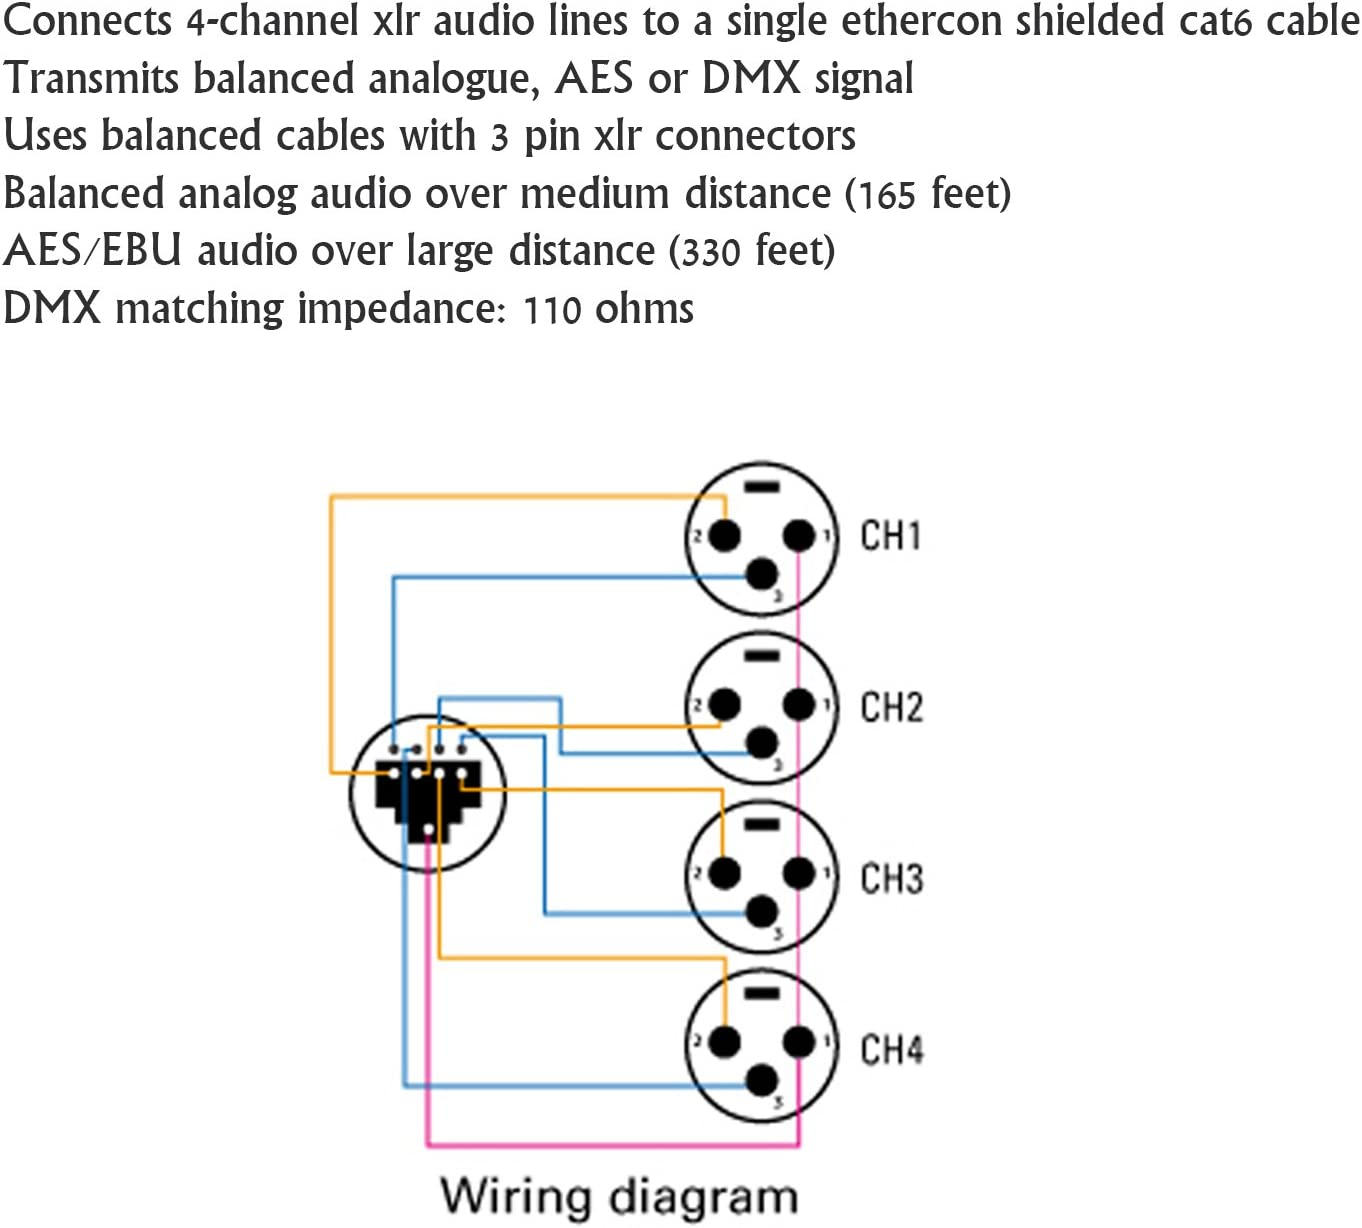 Cat 5 Ether Cable Wiring Diagram Hecho | Wiring Diagram Cat Ethernet Cable Wiring Diagram Hecho on